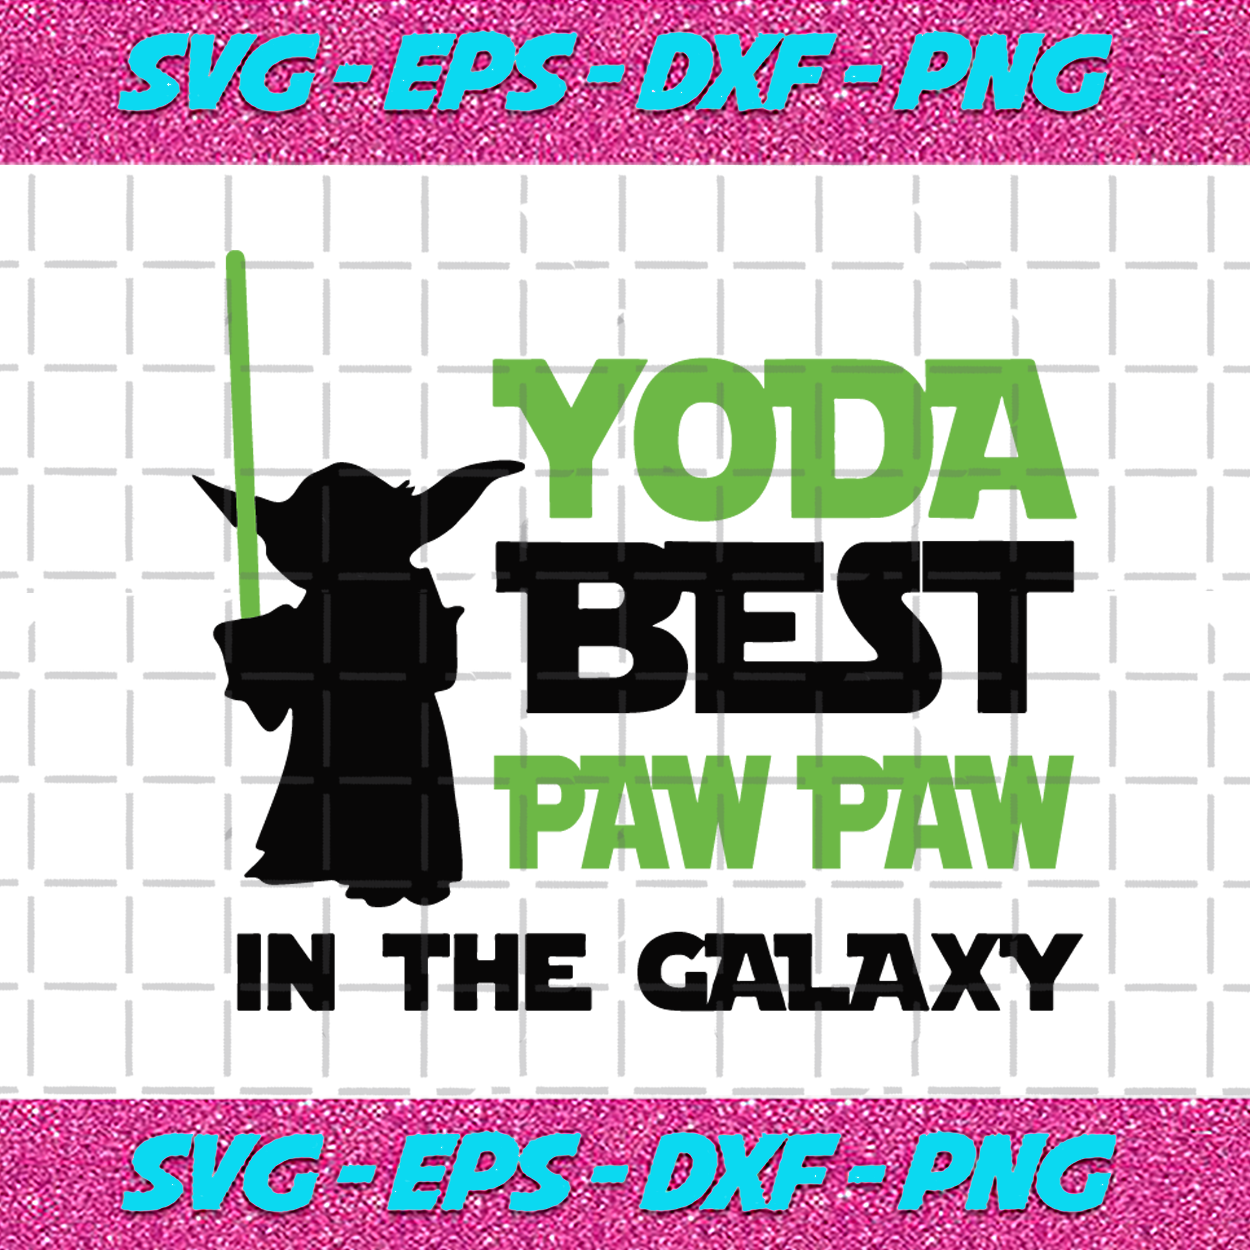 Free #2 father's day svg bundle by omc studio ($4.99). Yoda Best Paw Paw In The Galaxy Fathers Day Svg Fathers Day Gift Yoda Bundlefunny SVG, PNG, EPS, DXF File